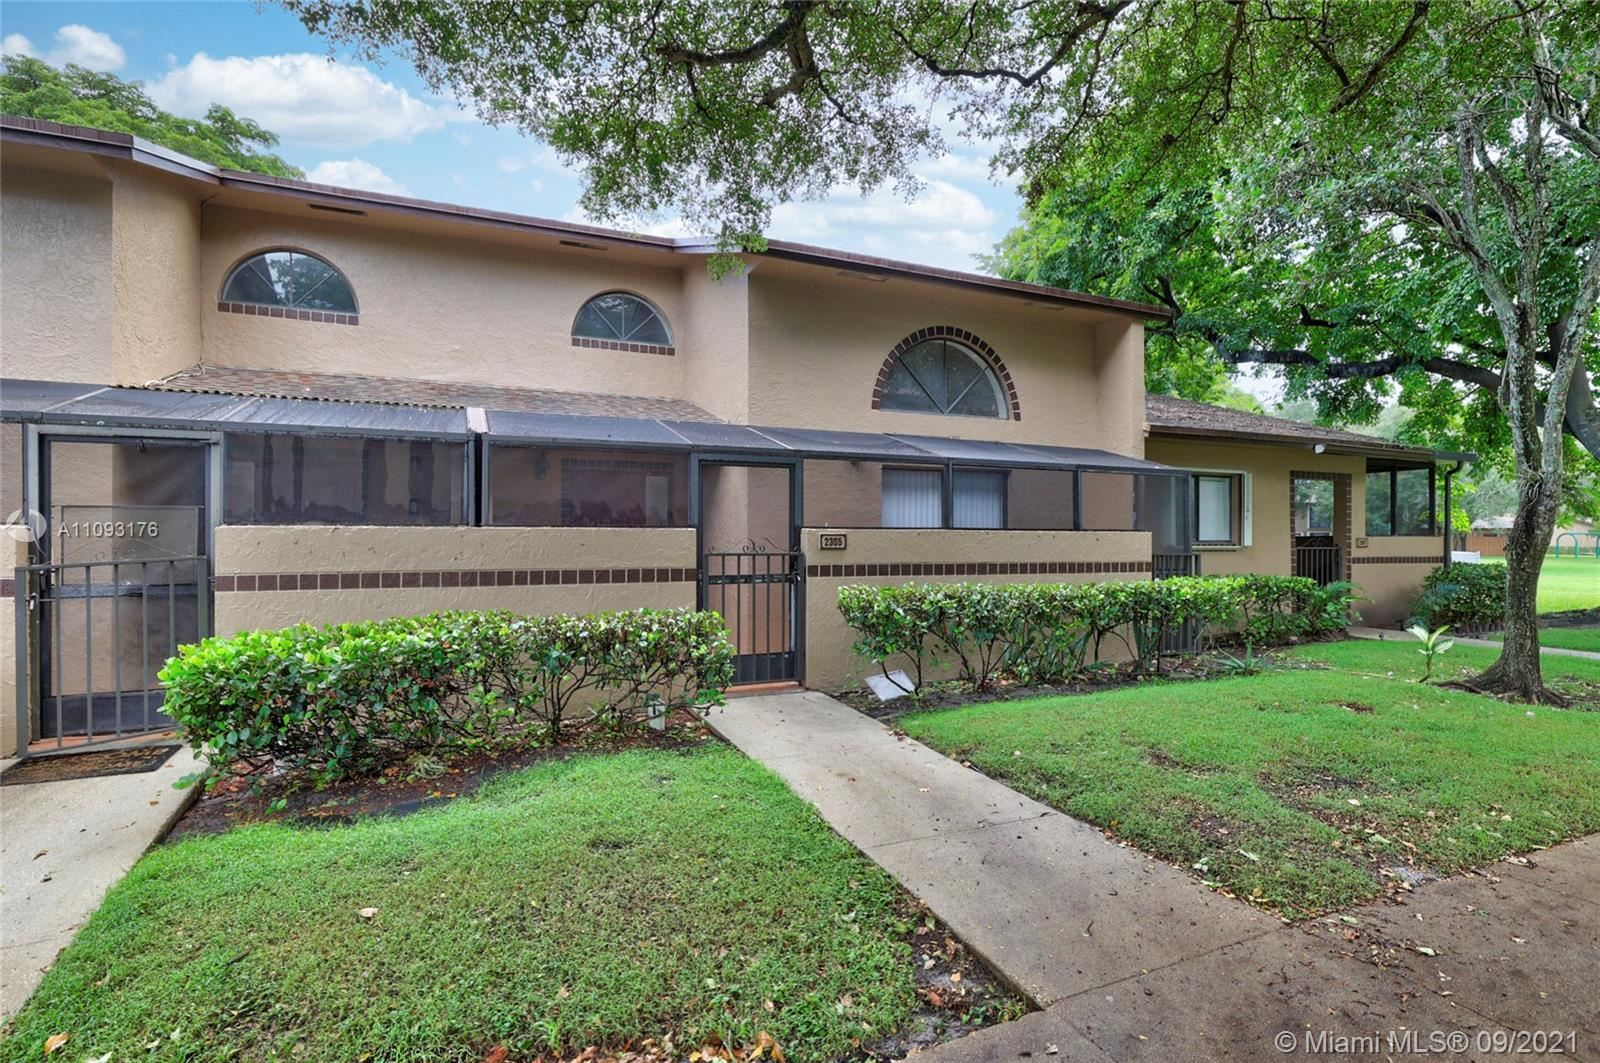 2305 NW 36th Ave, Coconut Creek, FL 33066 - #: A11093176